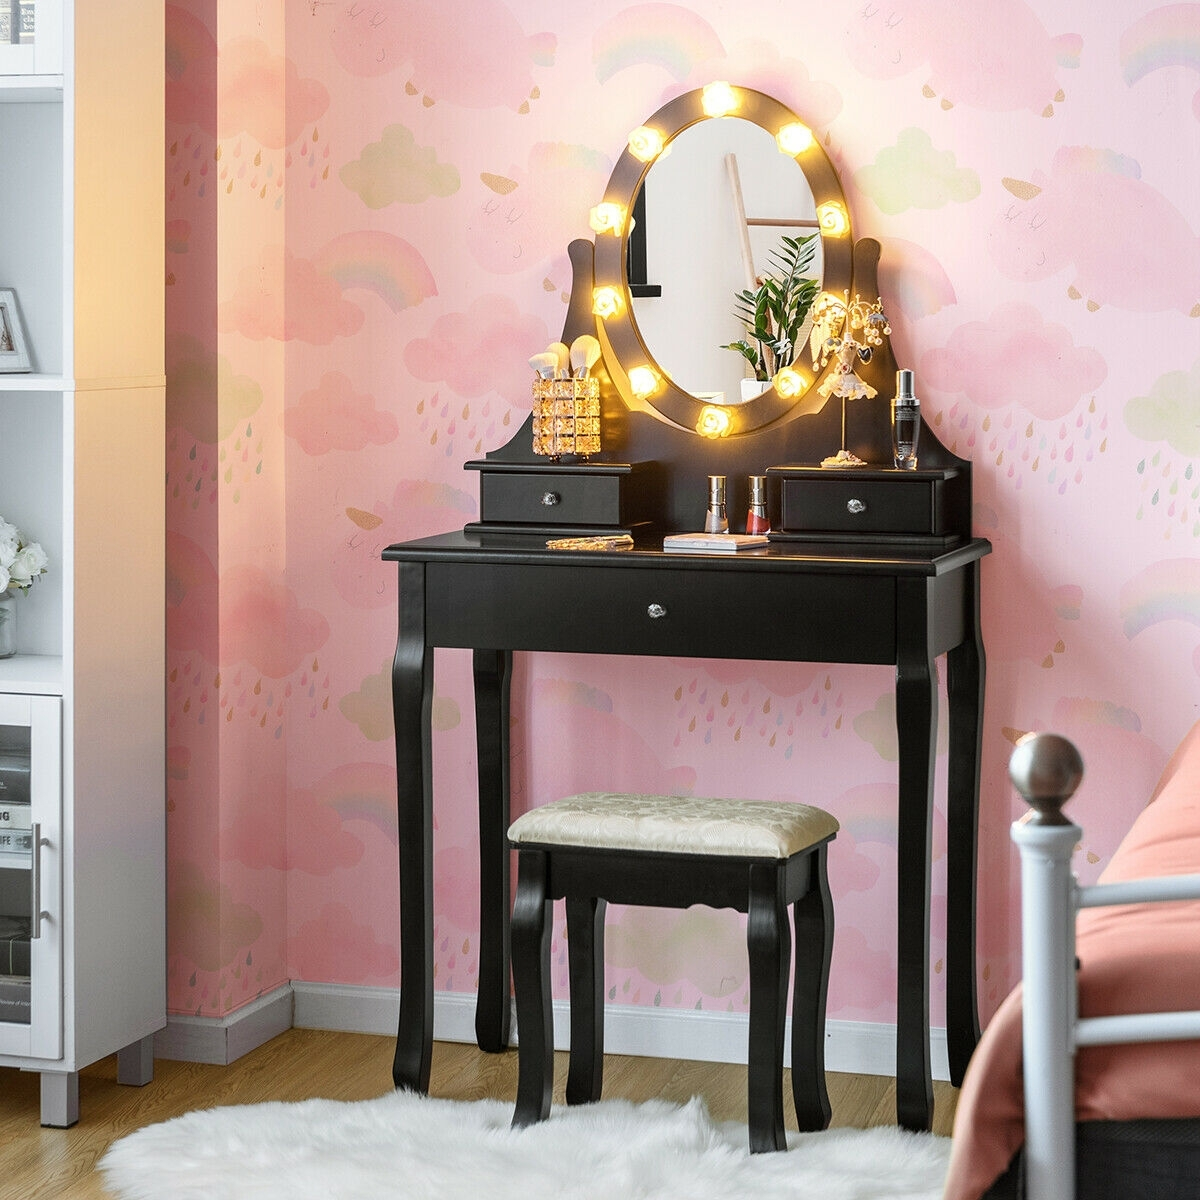 Image of 3 Drawers Lighted Mirror Vanity Dressing Table Stool Set